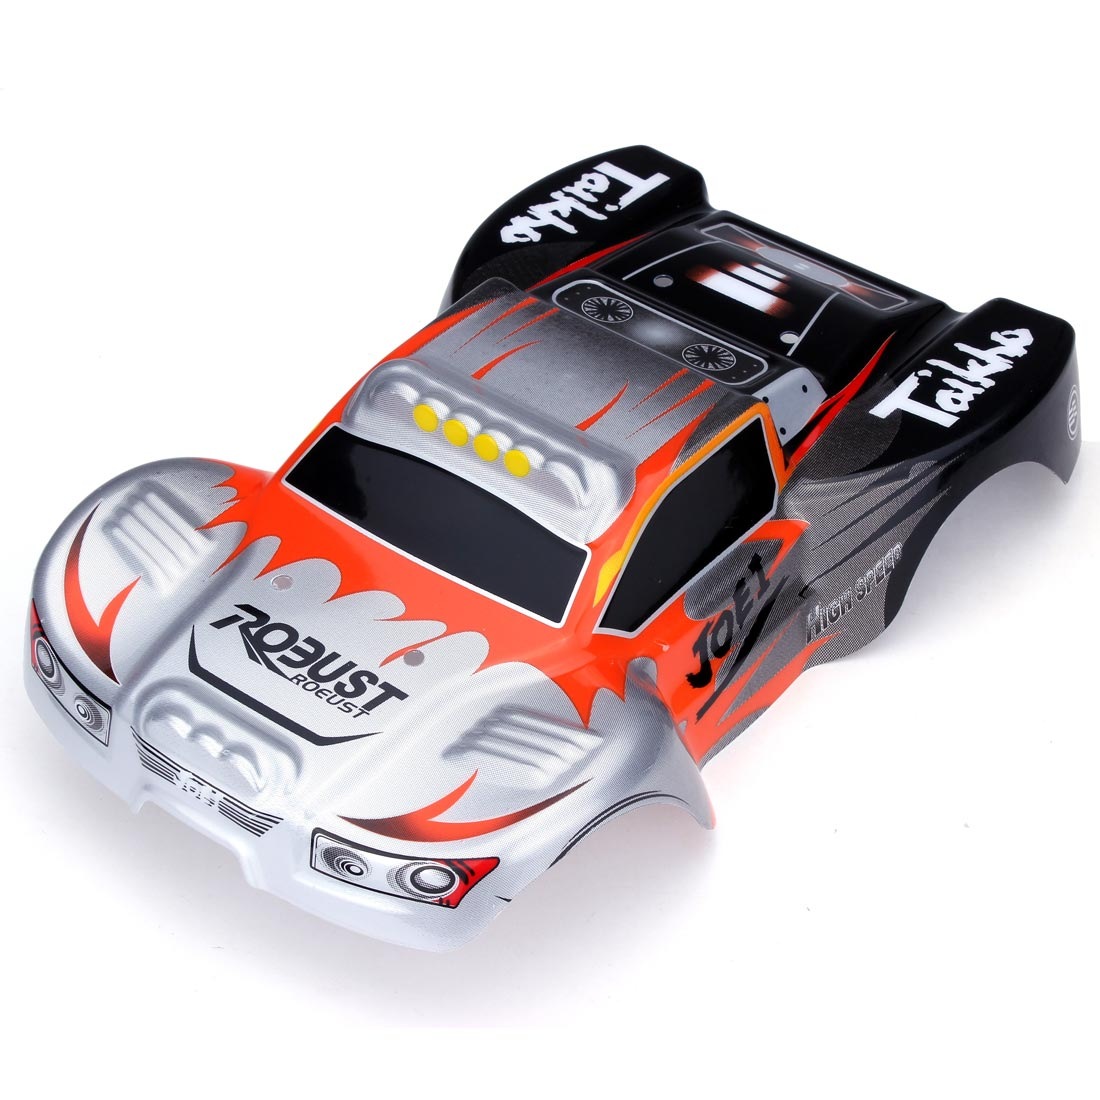 New WLToys Wltoys A969 Rc Car Spare Parts Covers 1/18 Remote ...